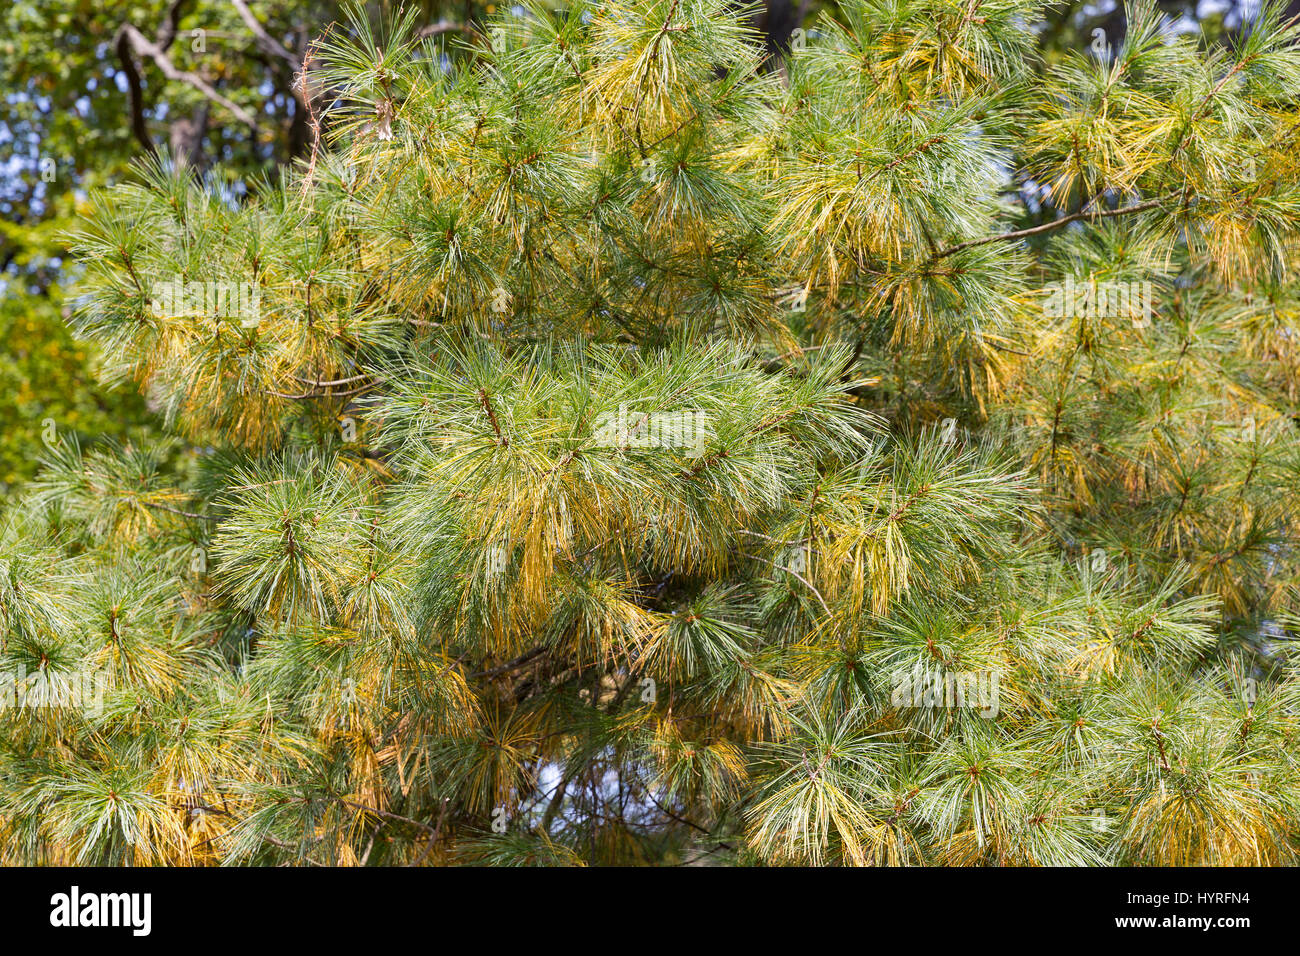 Green and yellow spruce needles background closeup - Stock Image